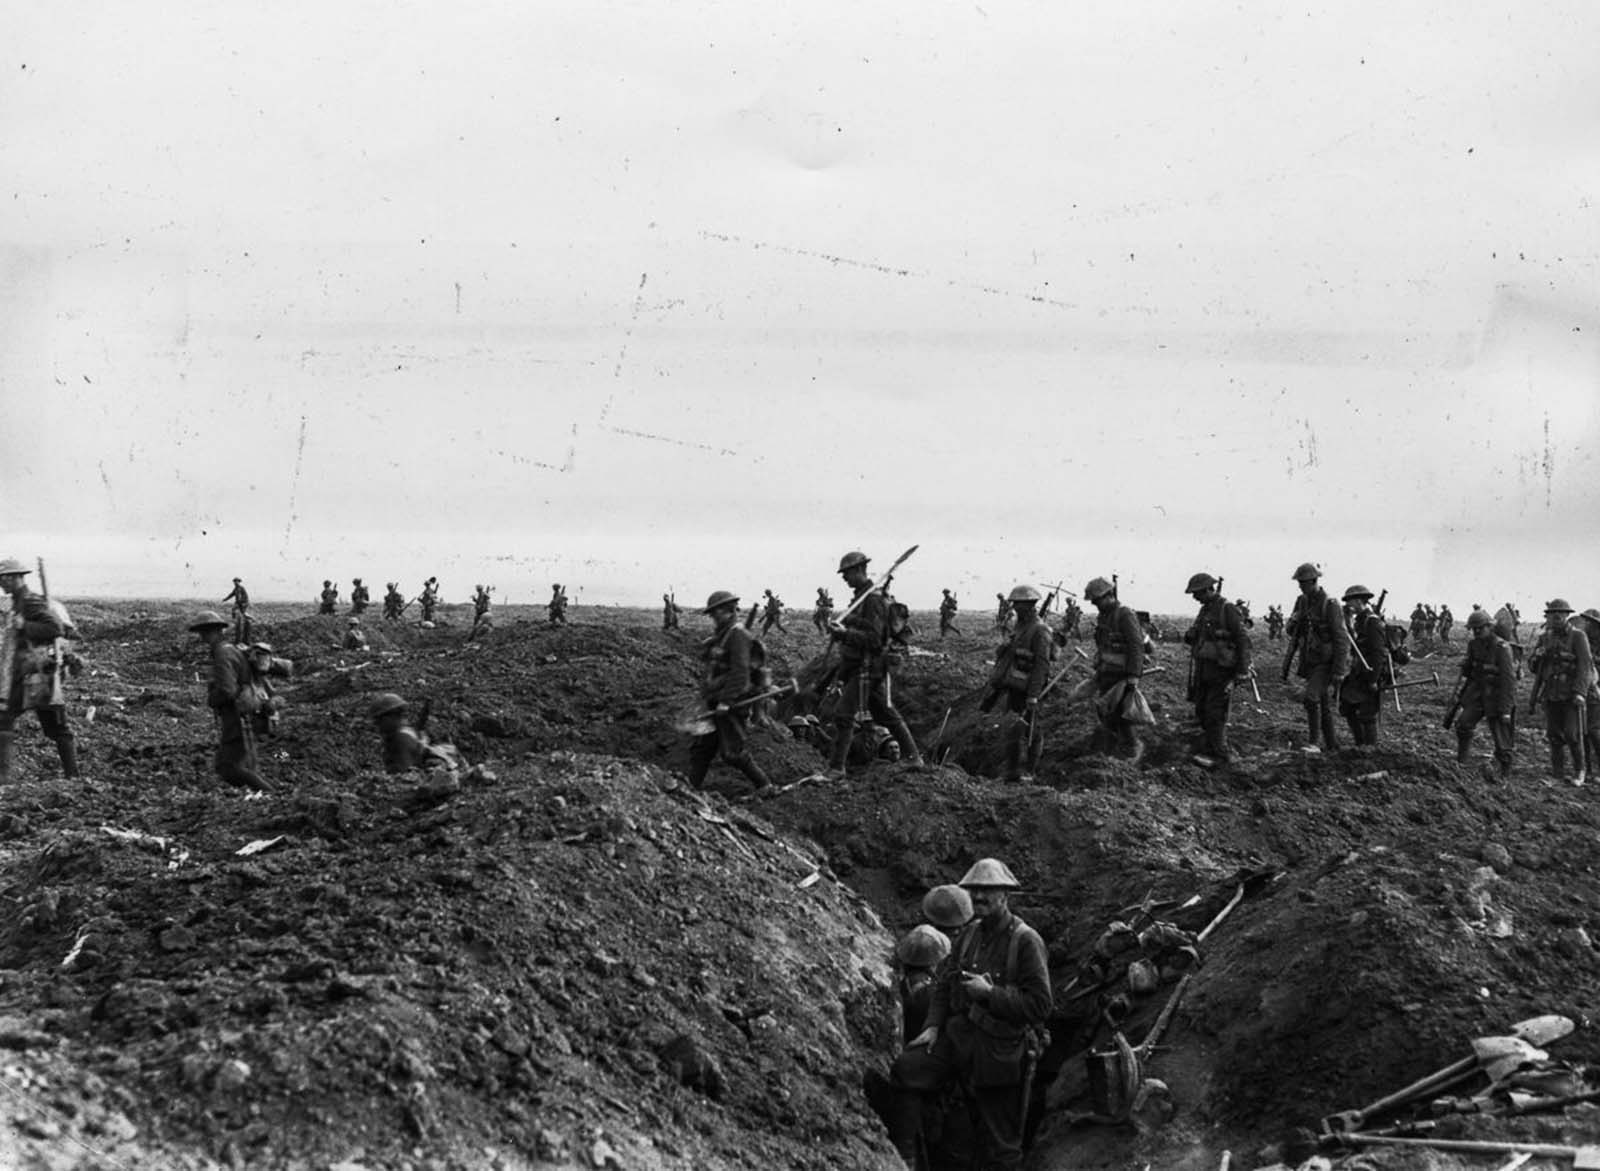 Reinforcements cross the old German front line during the advance towards Flers. September 15, 1916.